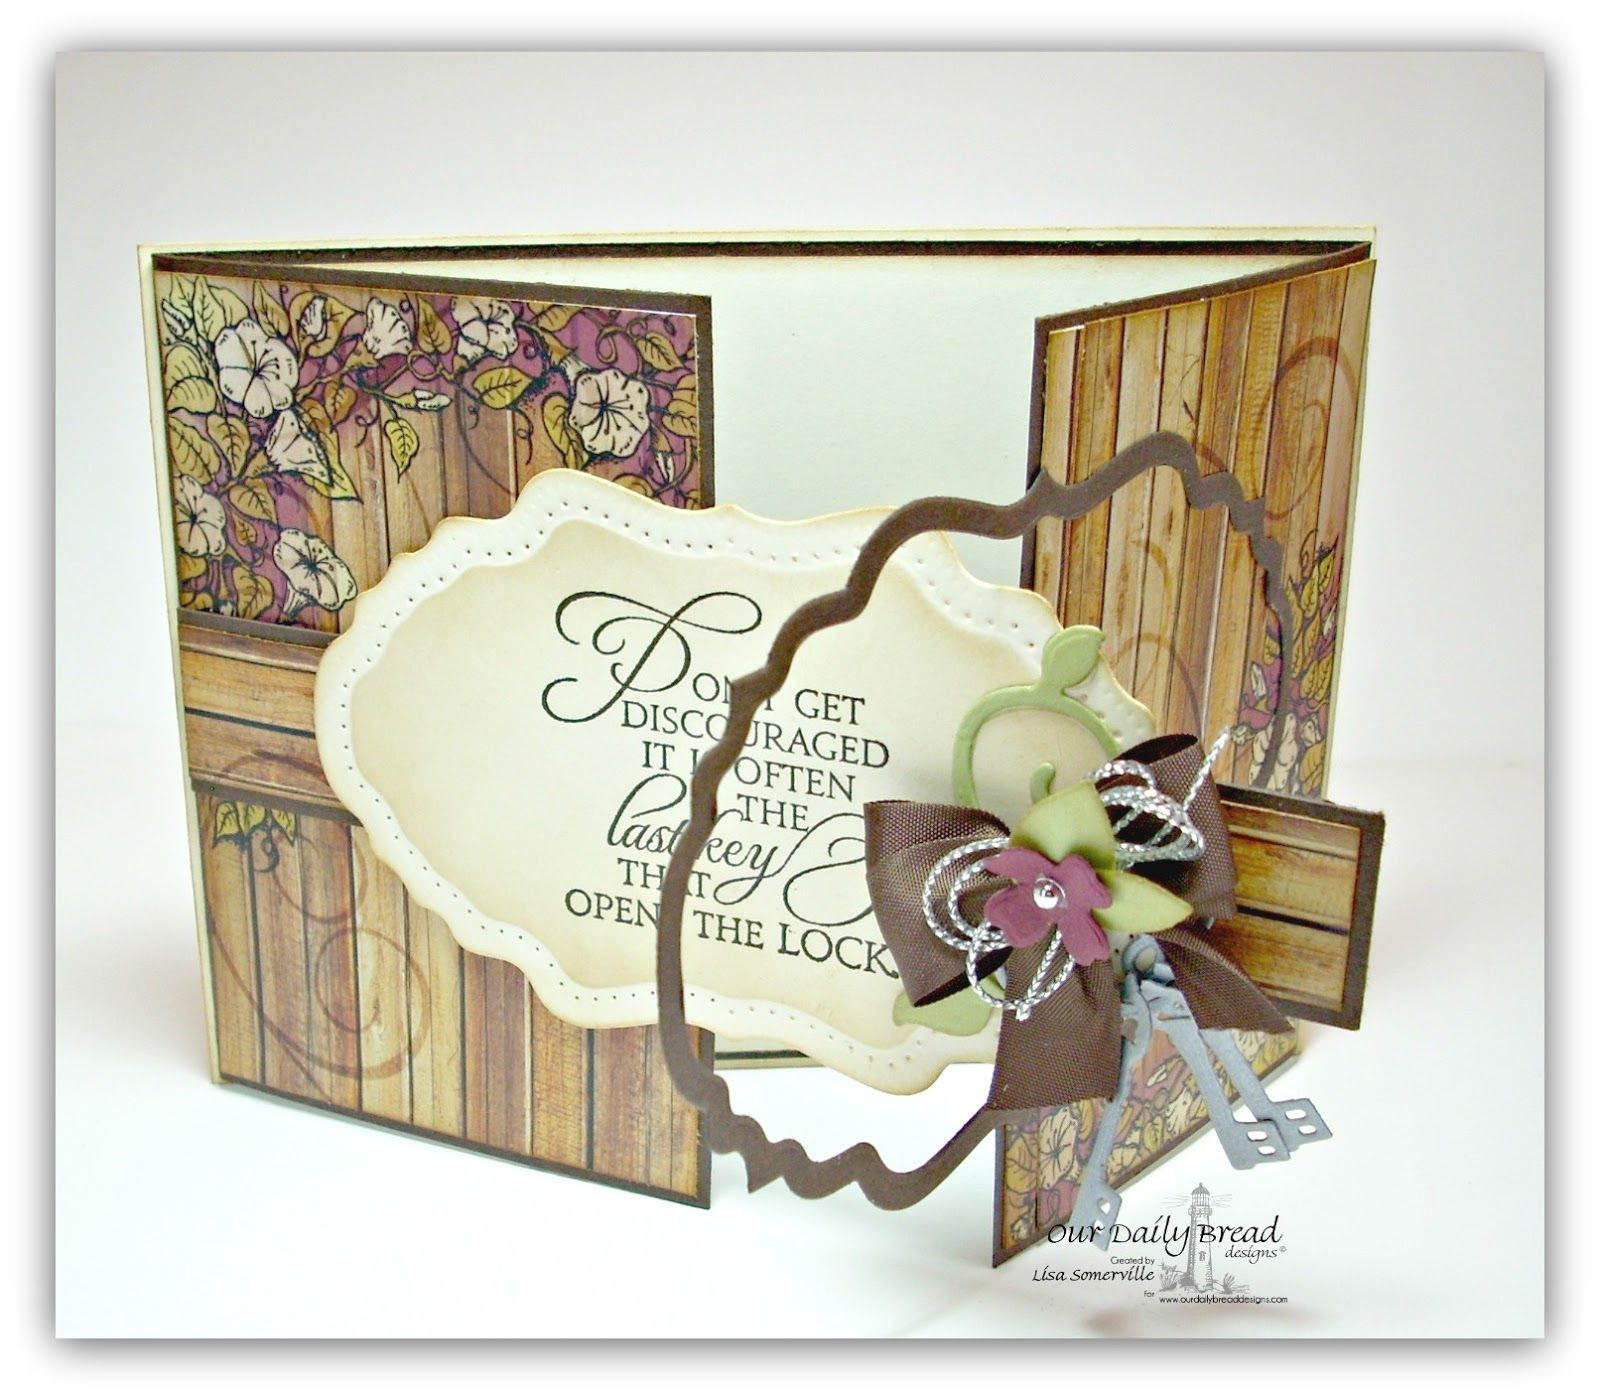 Designs by lisa somerville our daily bread designs may